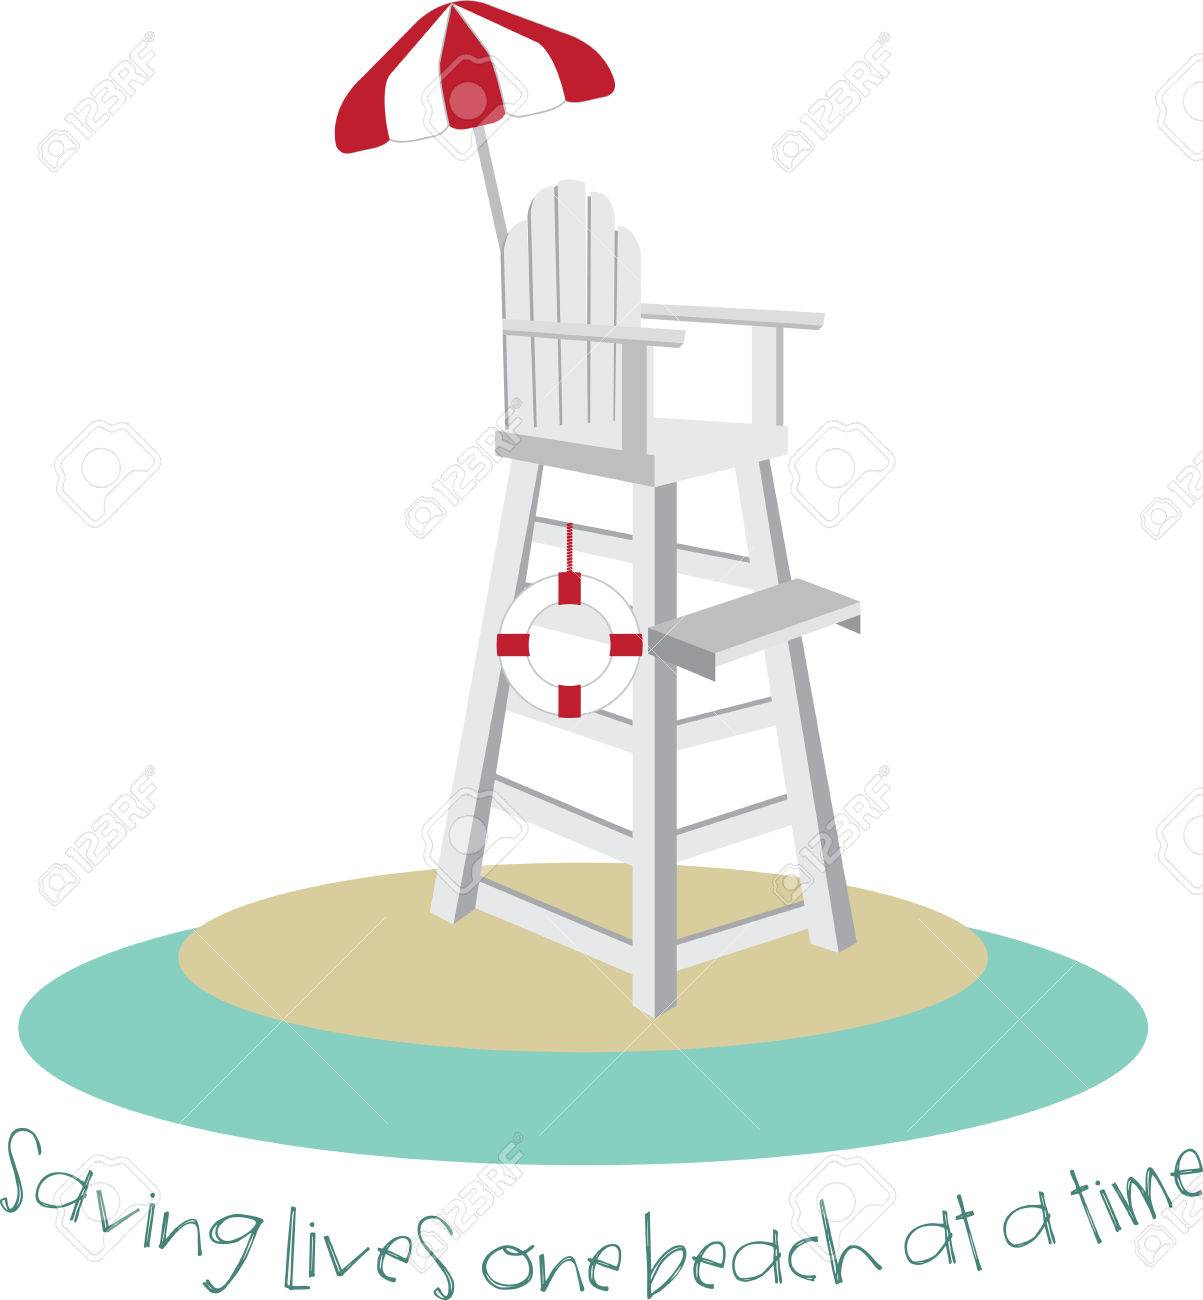 Lifeguard chair cartoon - Tall Lifeguard Chair With A Red And White Umbrella Stock Vector 41241321